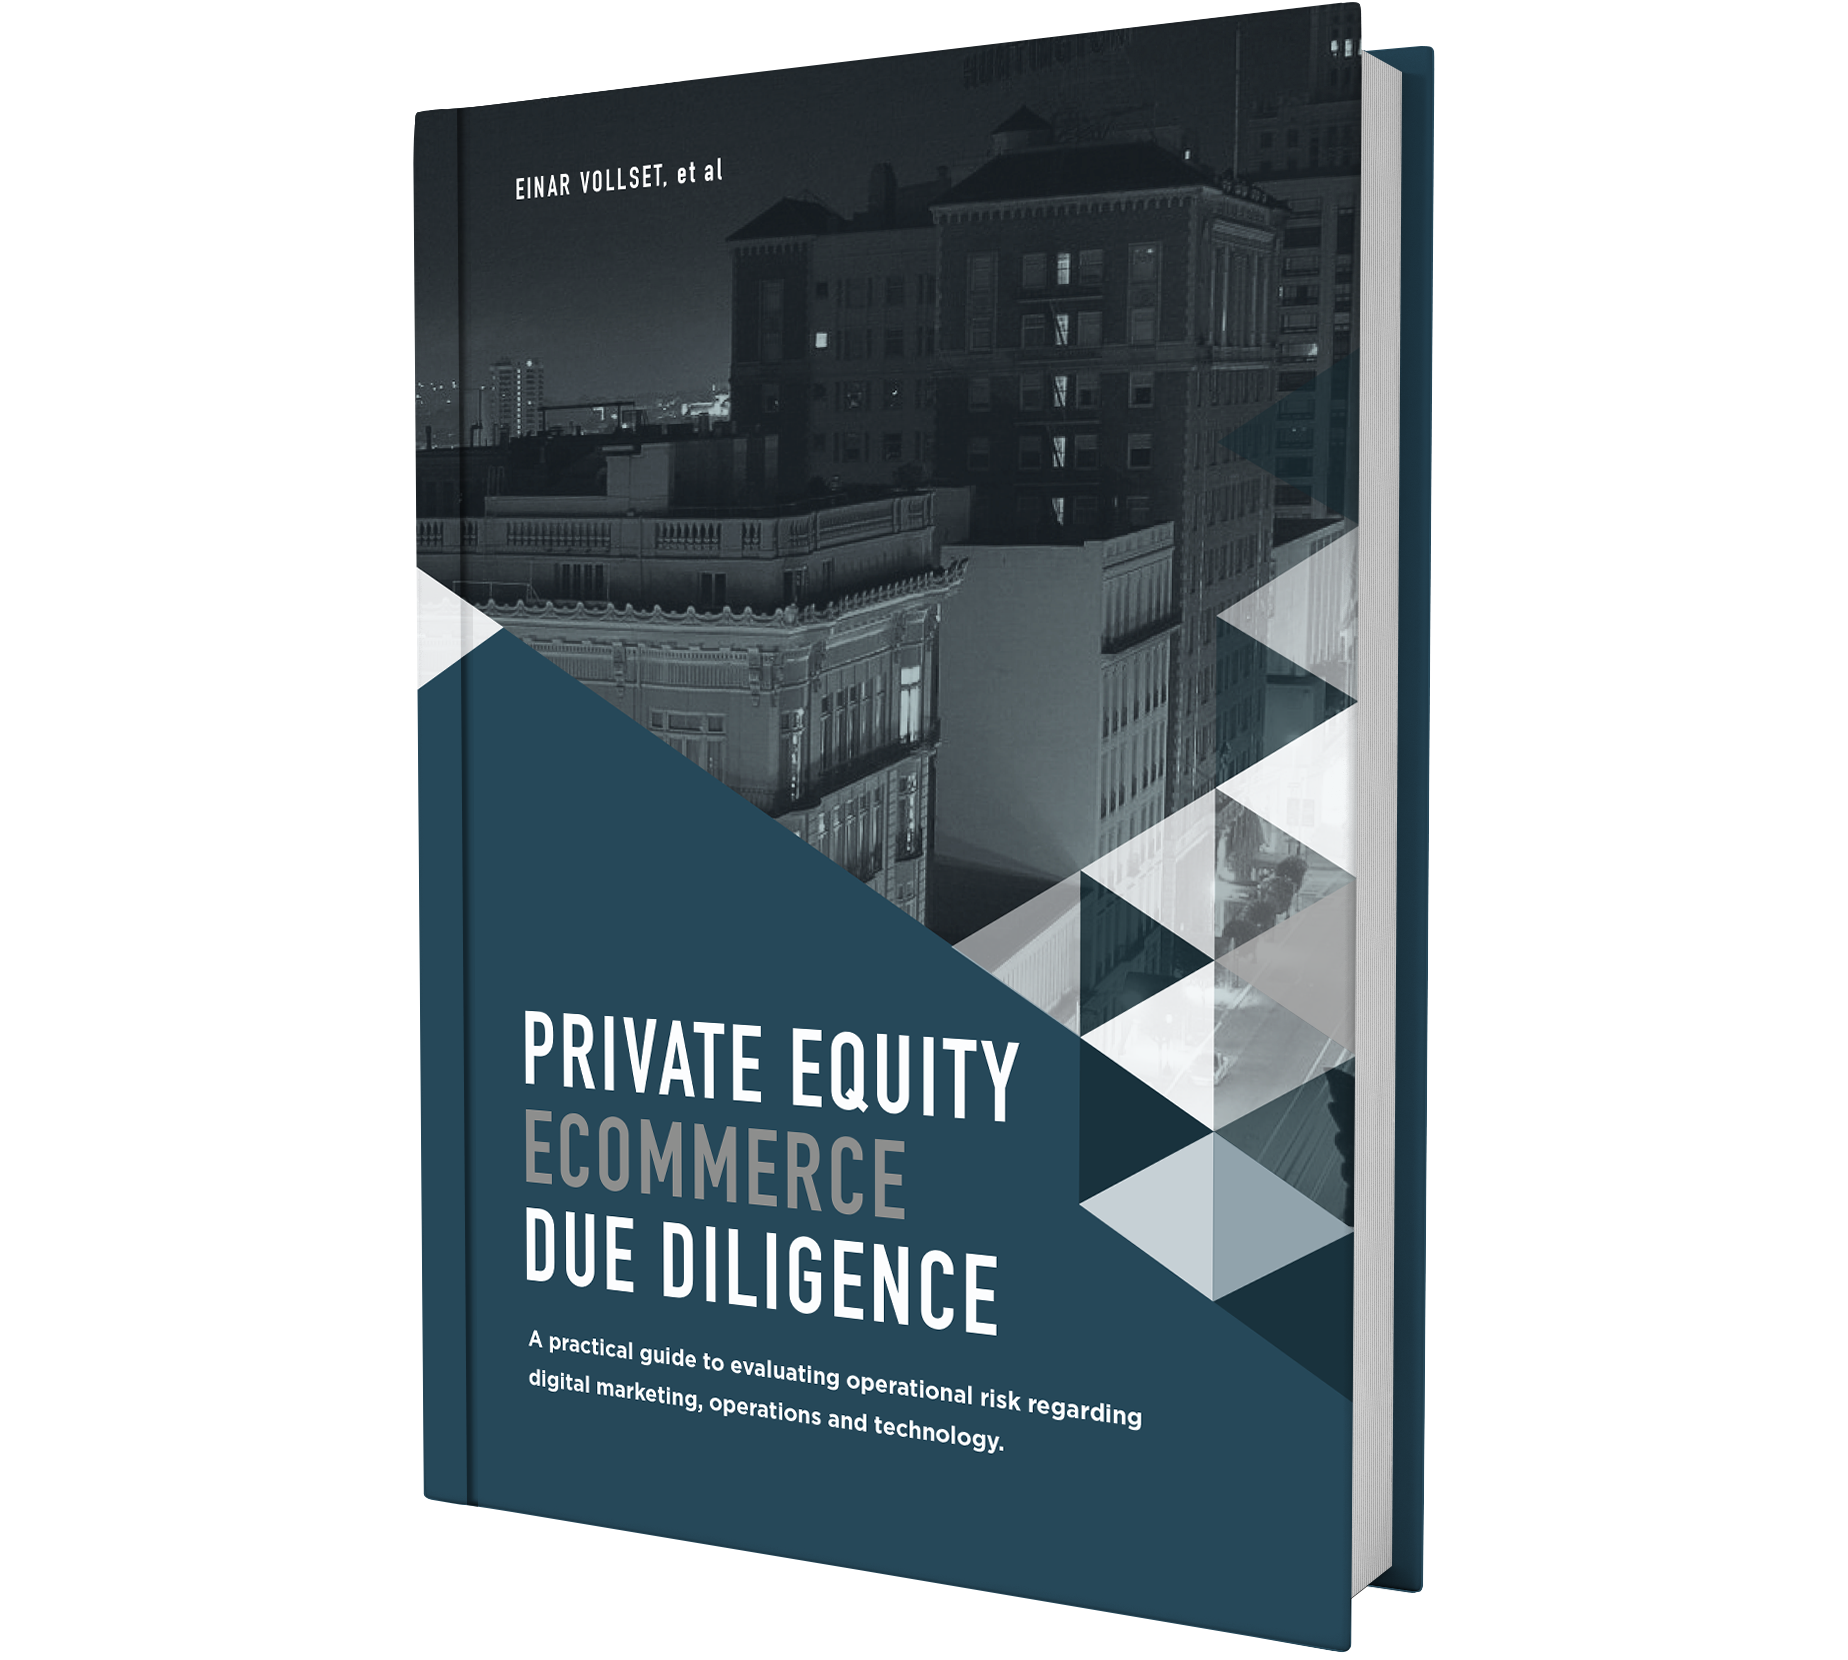 Private Equity eCommerce Due Diligence - A practical guide to evaluating operational risk regarding digital marketing, operations & technology. LEARN MORE →